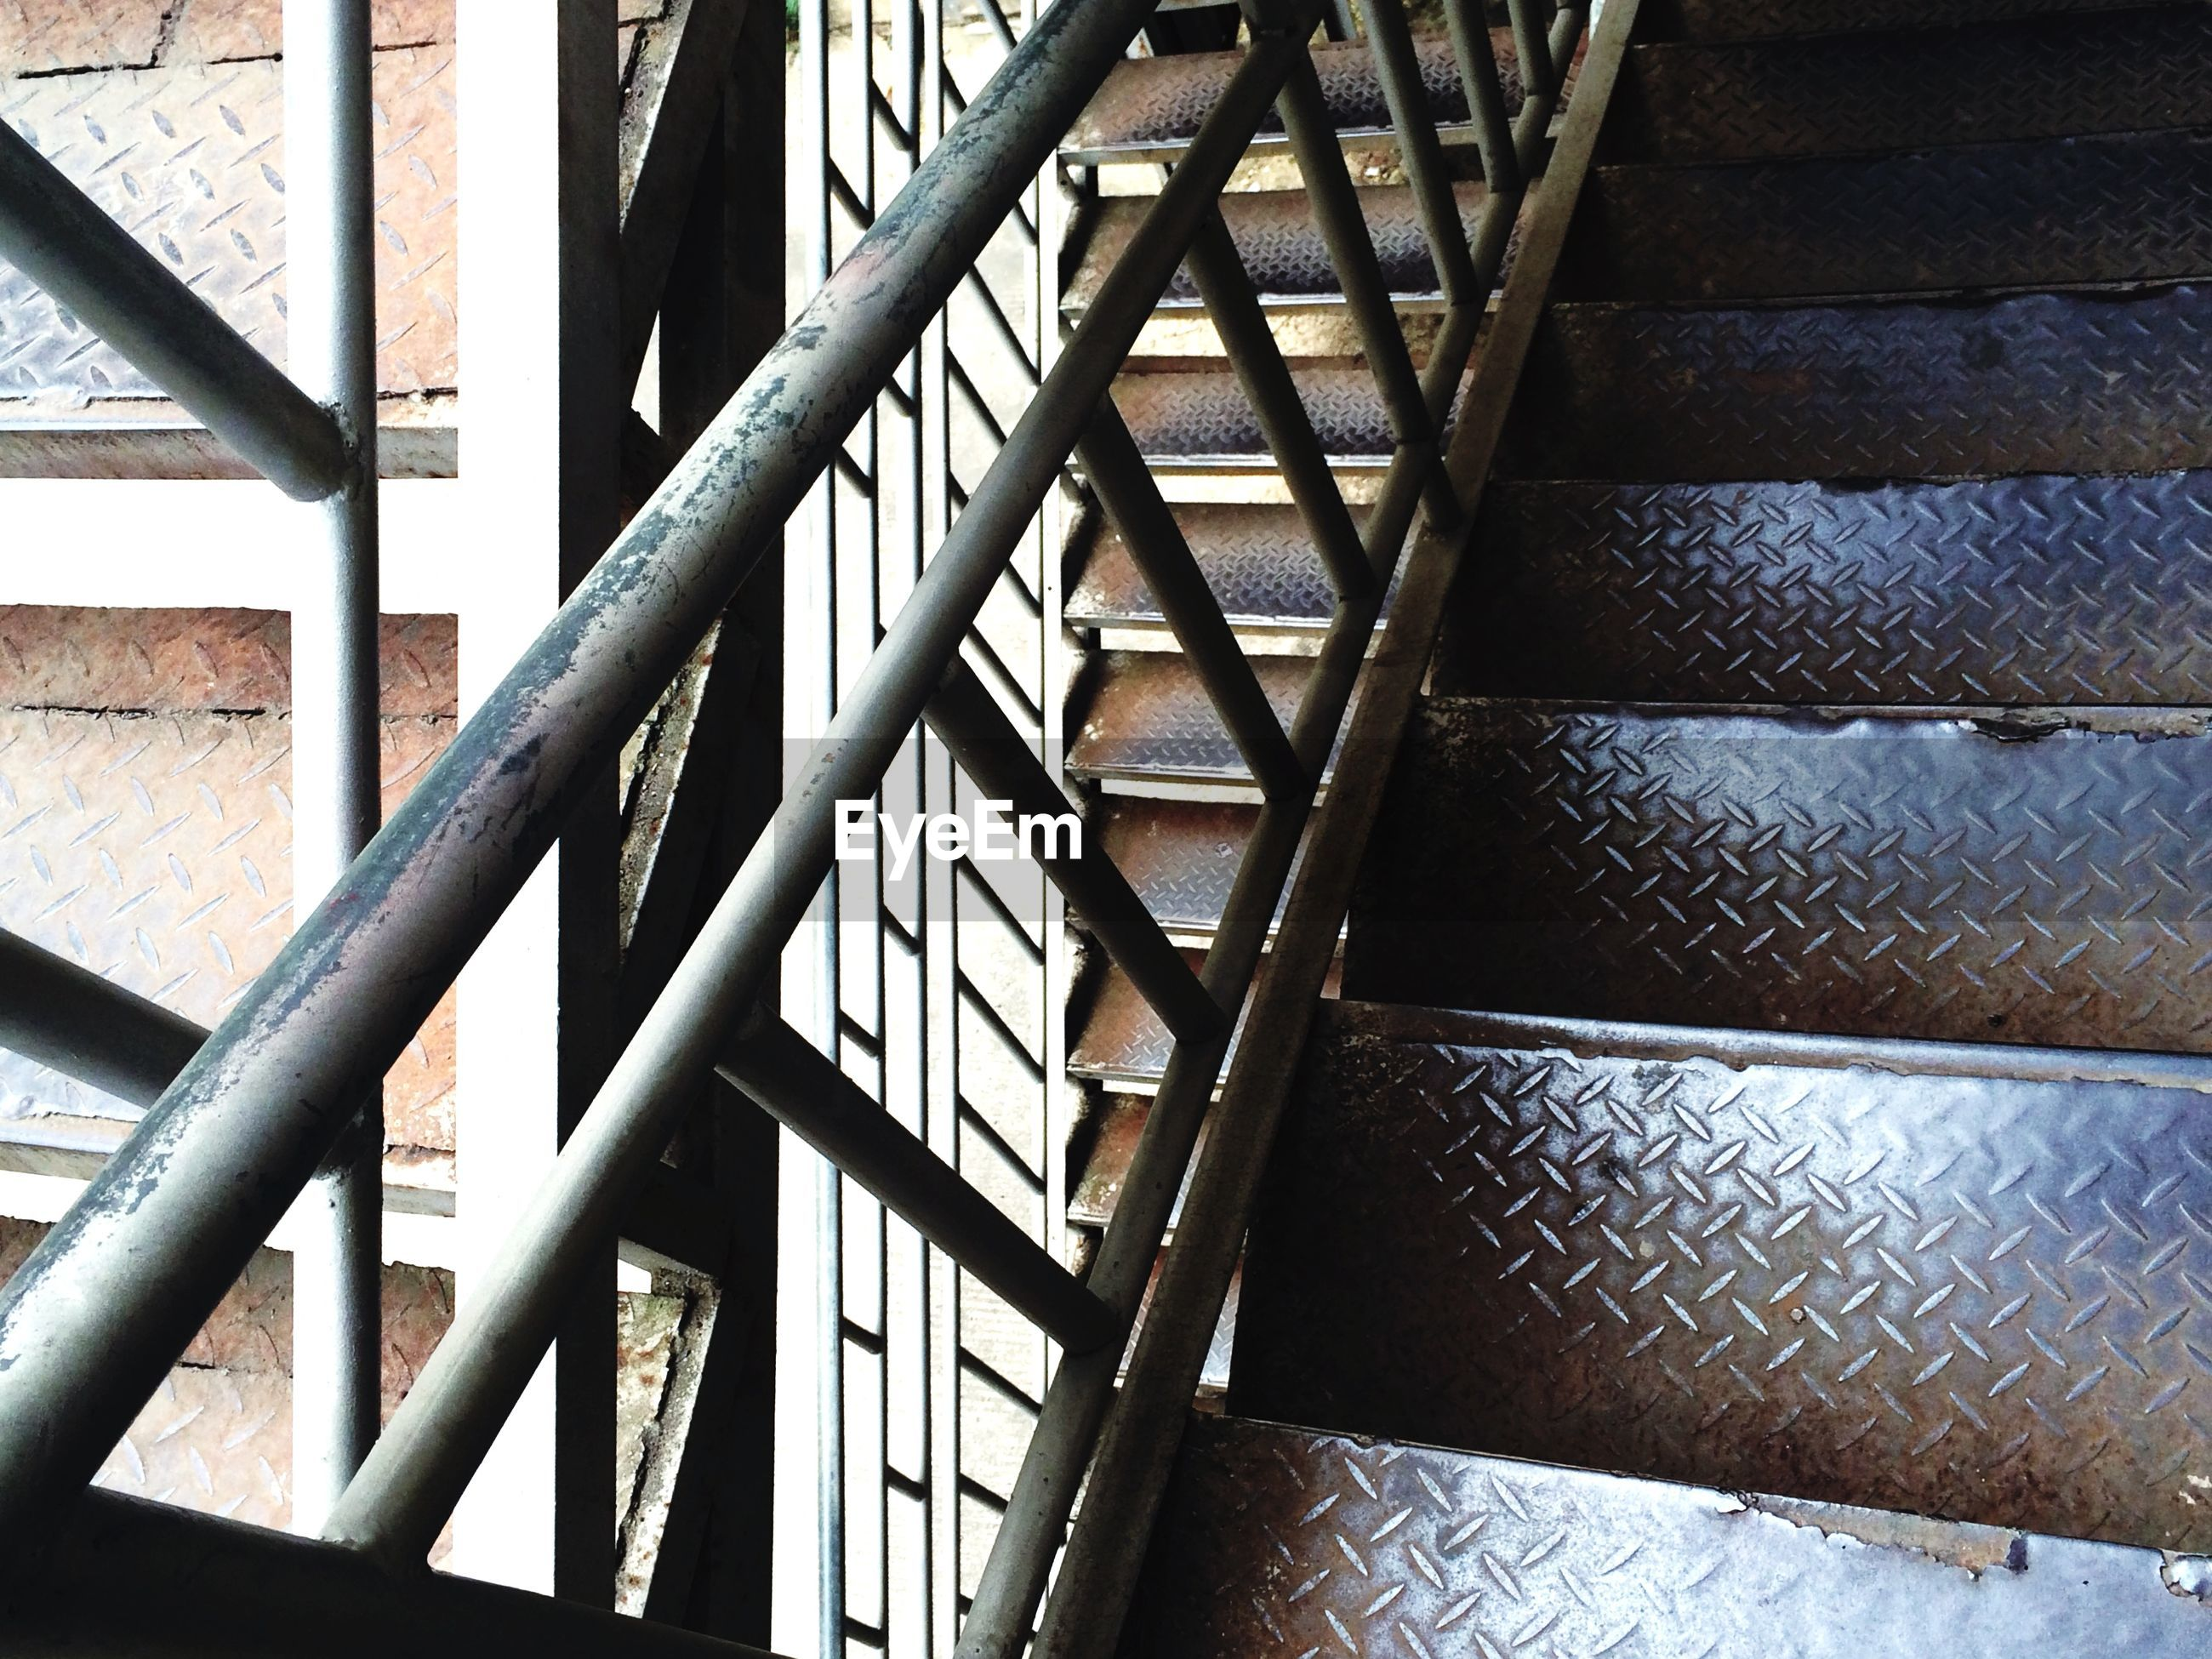 architecture, built structure, pattern, indoors, metal, full frame, low angle view, design, railing, metallic, backgrounds, diminishing perspective, repetition, steps and staircases, architectural feature, steps, building exterior, grid, no people, staircase